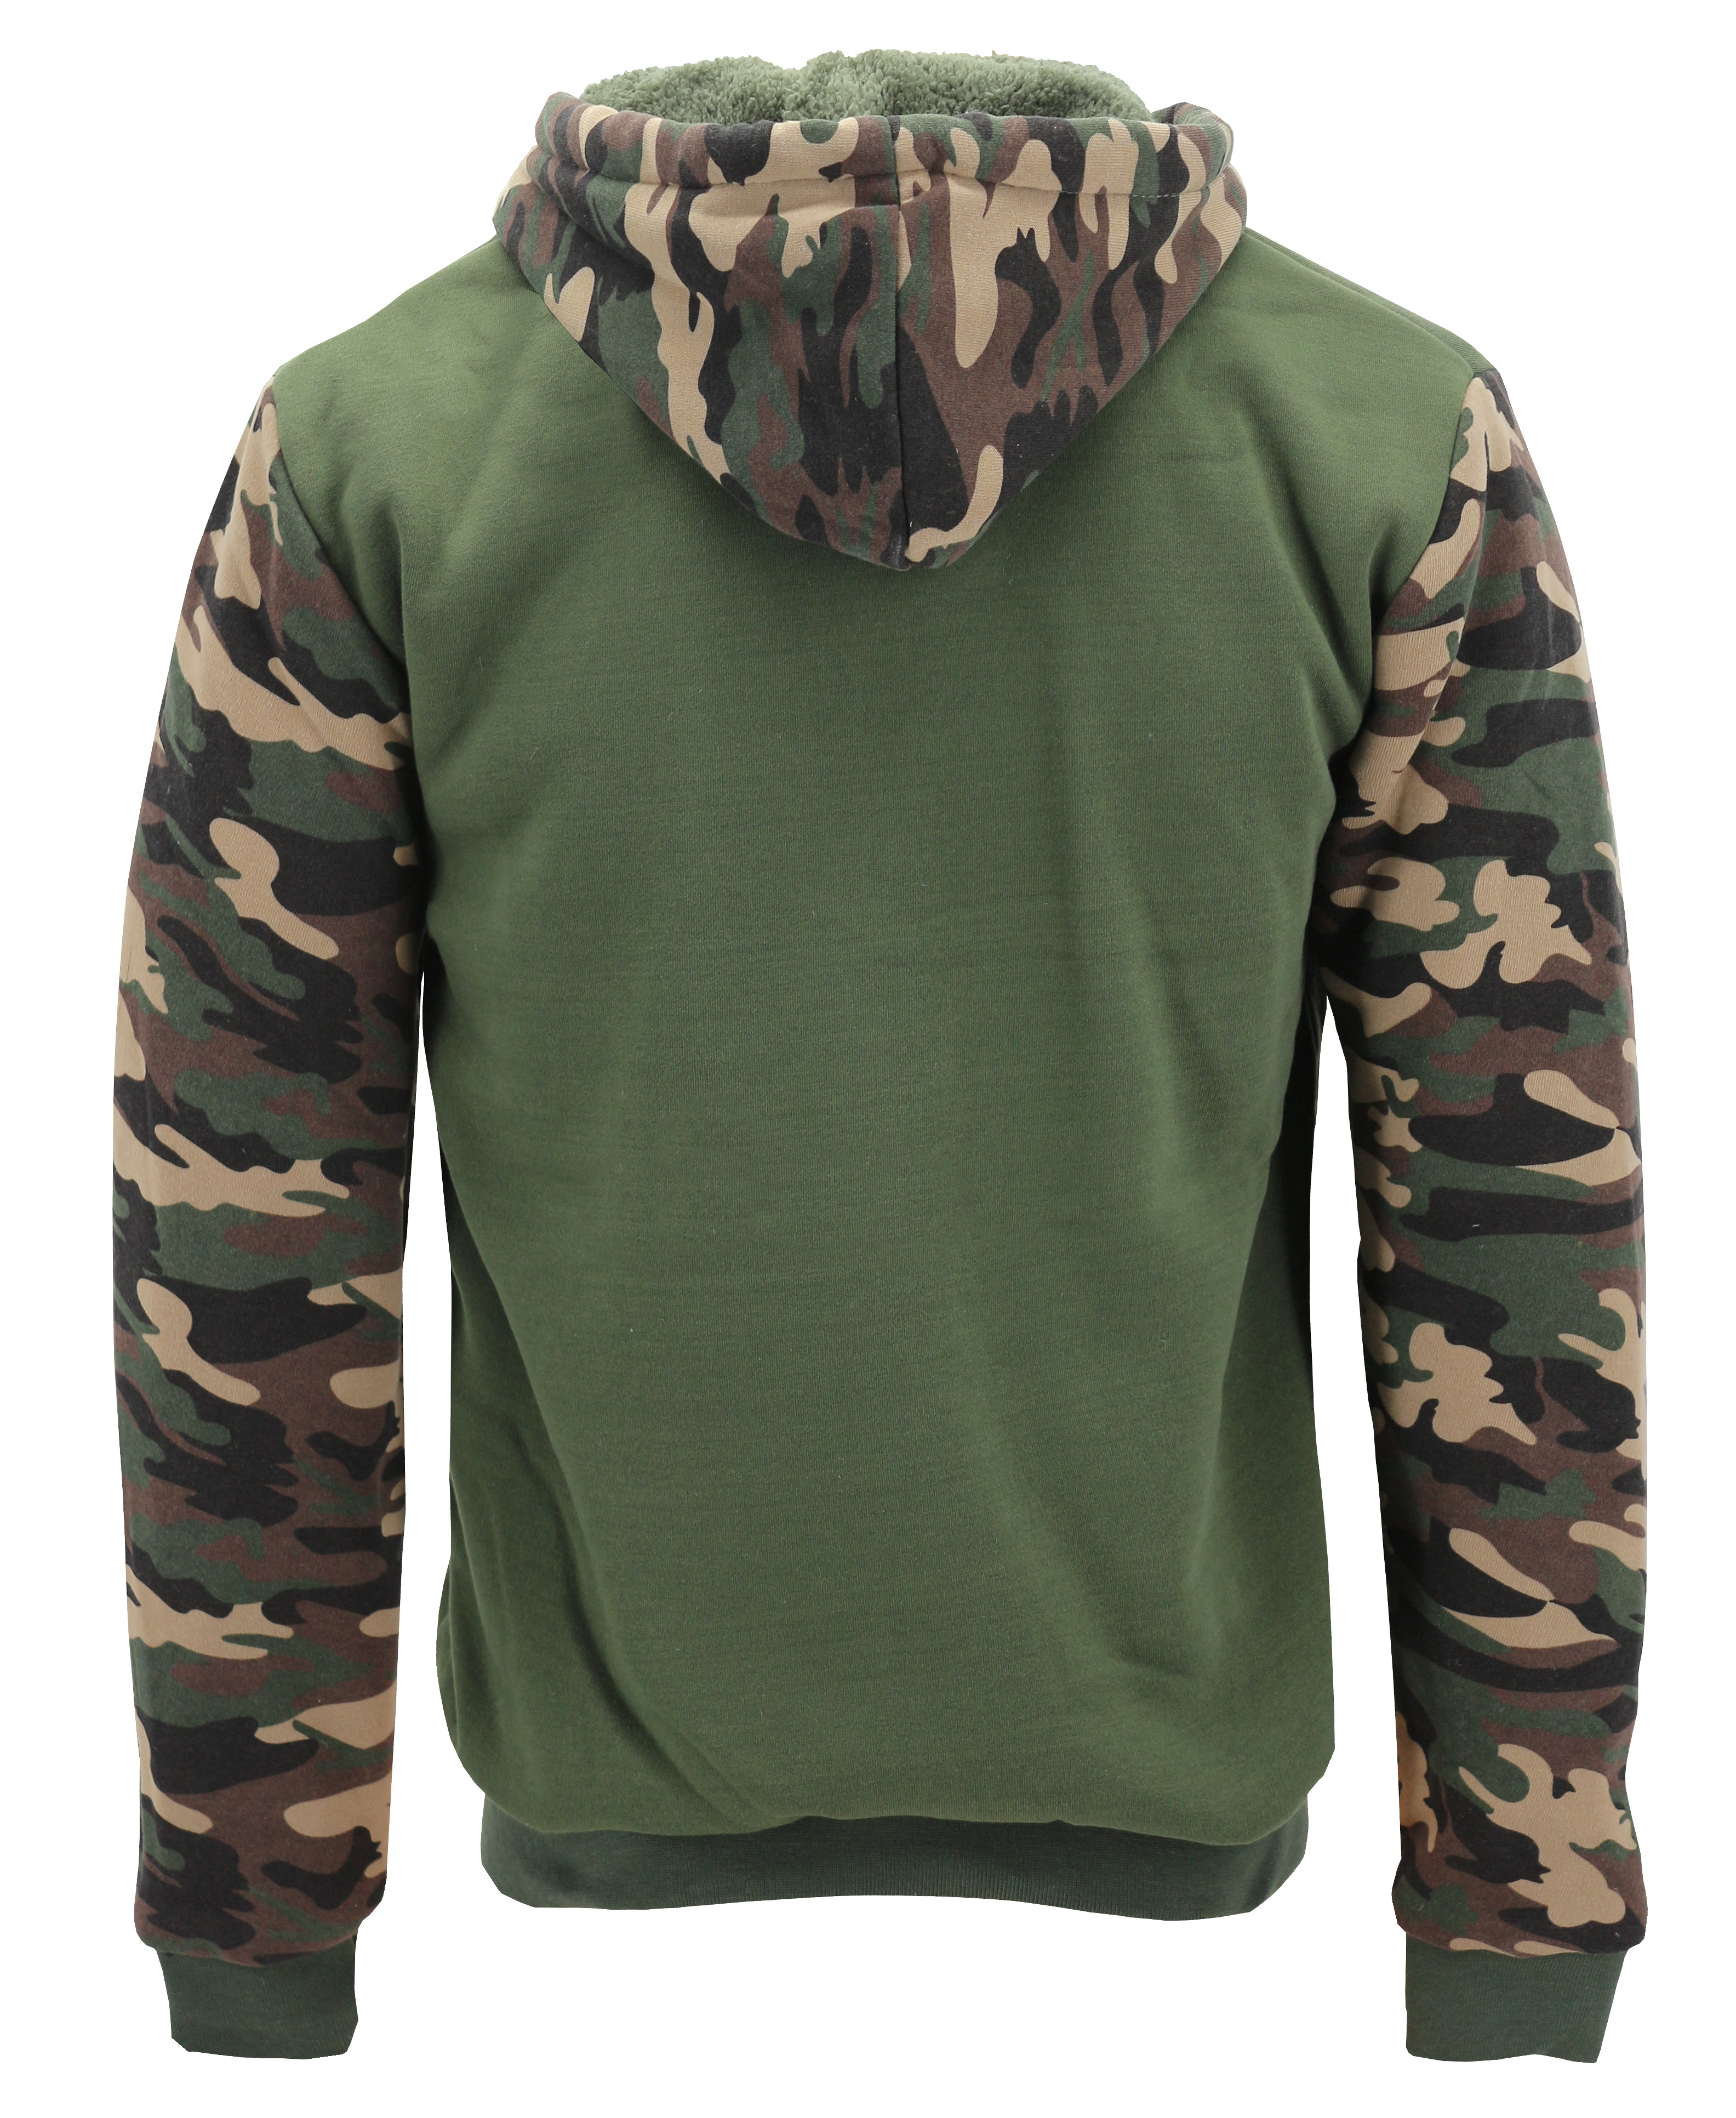 miniature 9 - Men-039-s-Camo-Sherpa-Hoodie-Zip-Up-Athletic-Army-Fleece-Hunting-Sweater-Jacket